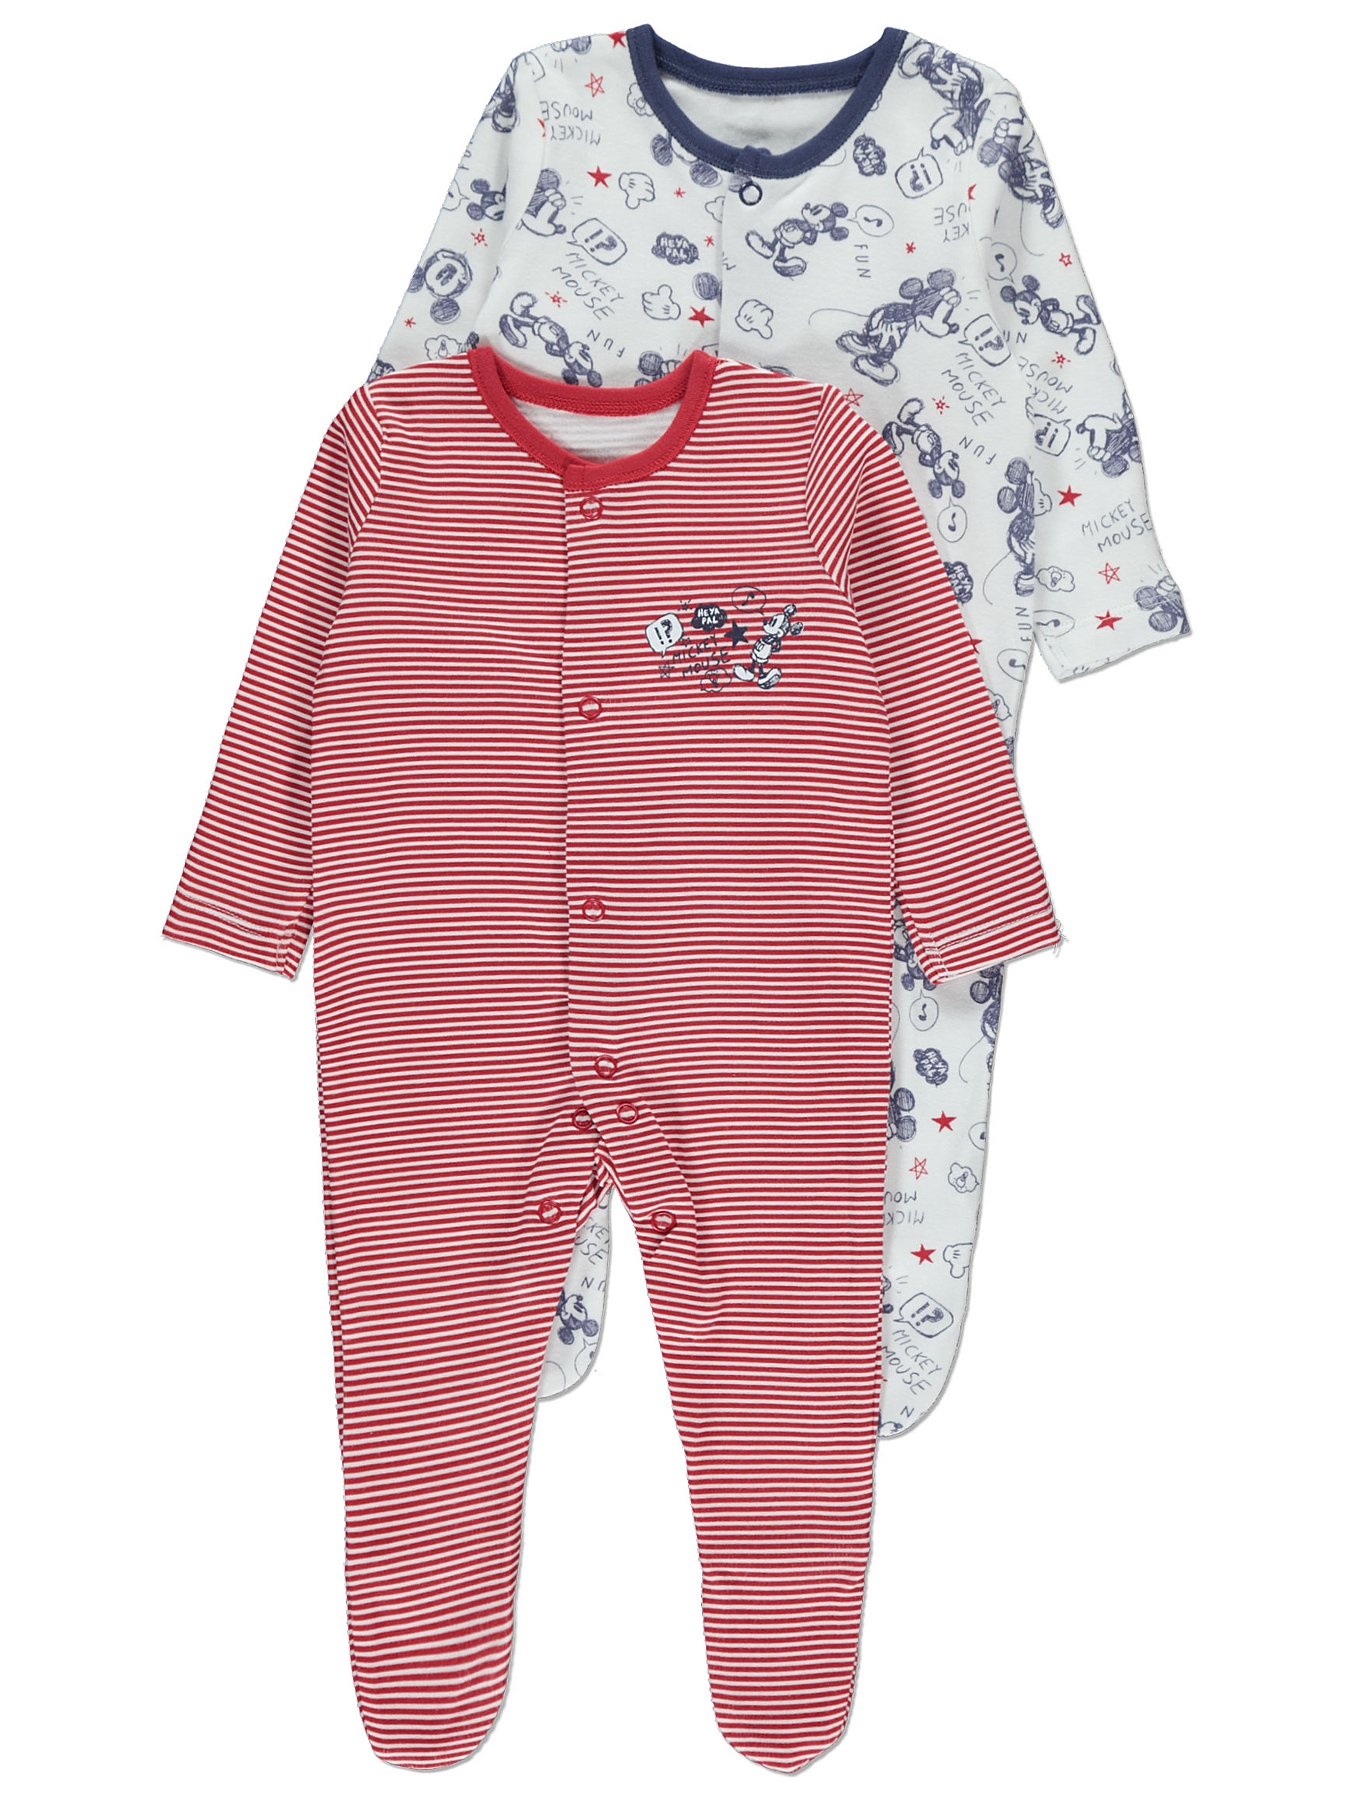 7b2b9d669 Disney Mickey Mouse 2 Pack Sleepsuits   Baby   George